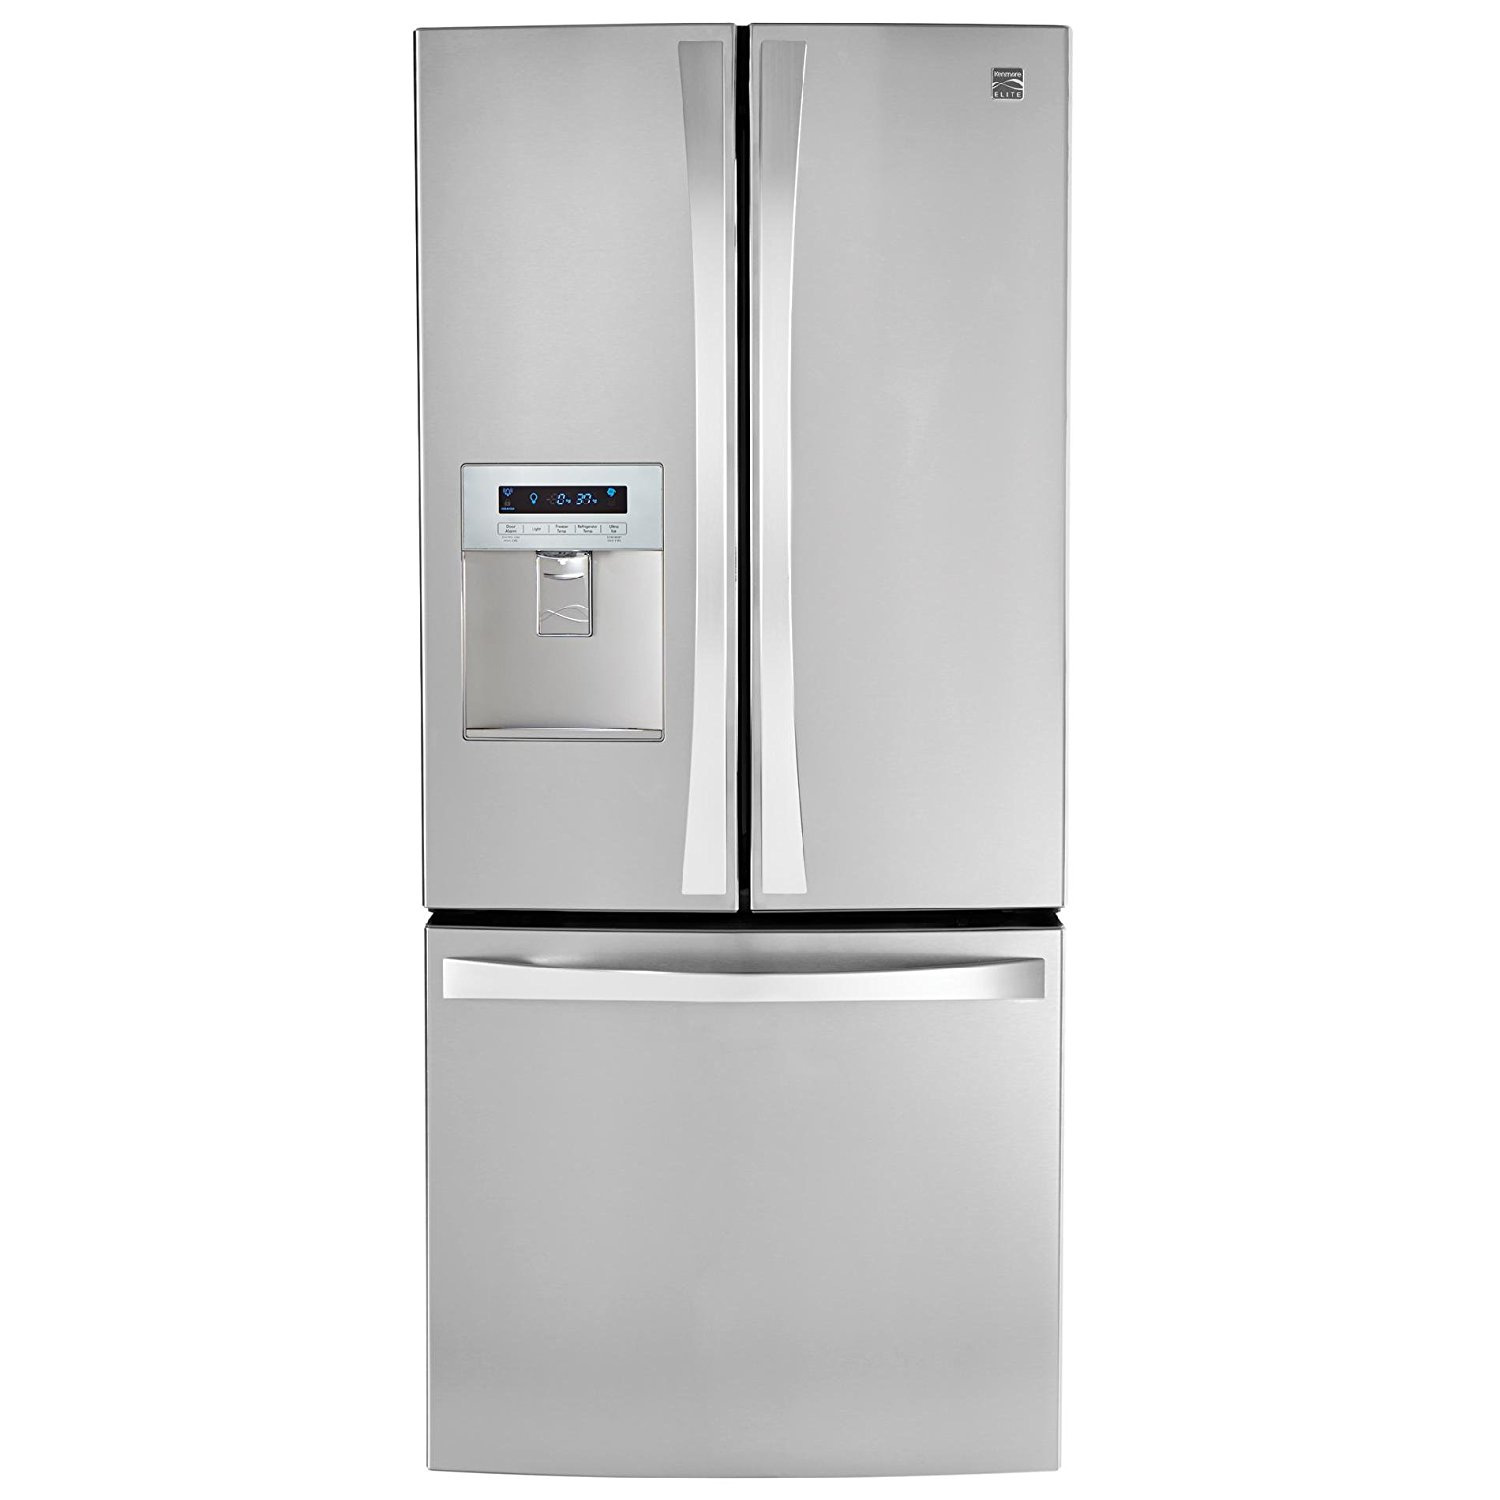 Kenmore Elite 71323 21.8 cu. ft. Wide French Door Bottom Freezer Refrigerator with Dispenser in Stainless Steel, includes delivery and hookup (Available in select cities only)